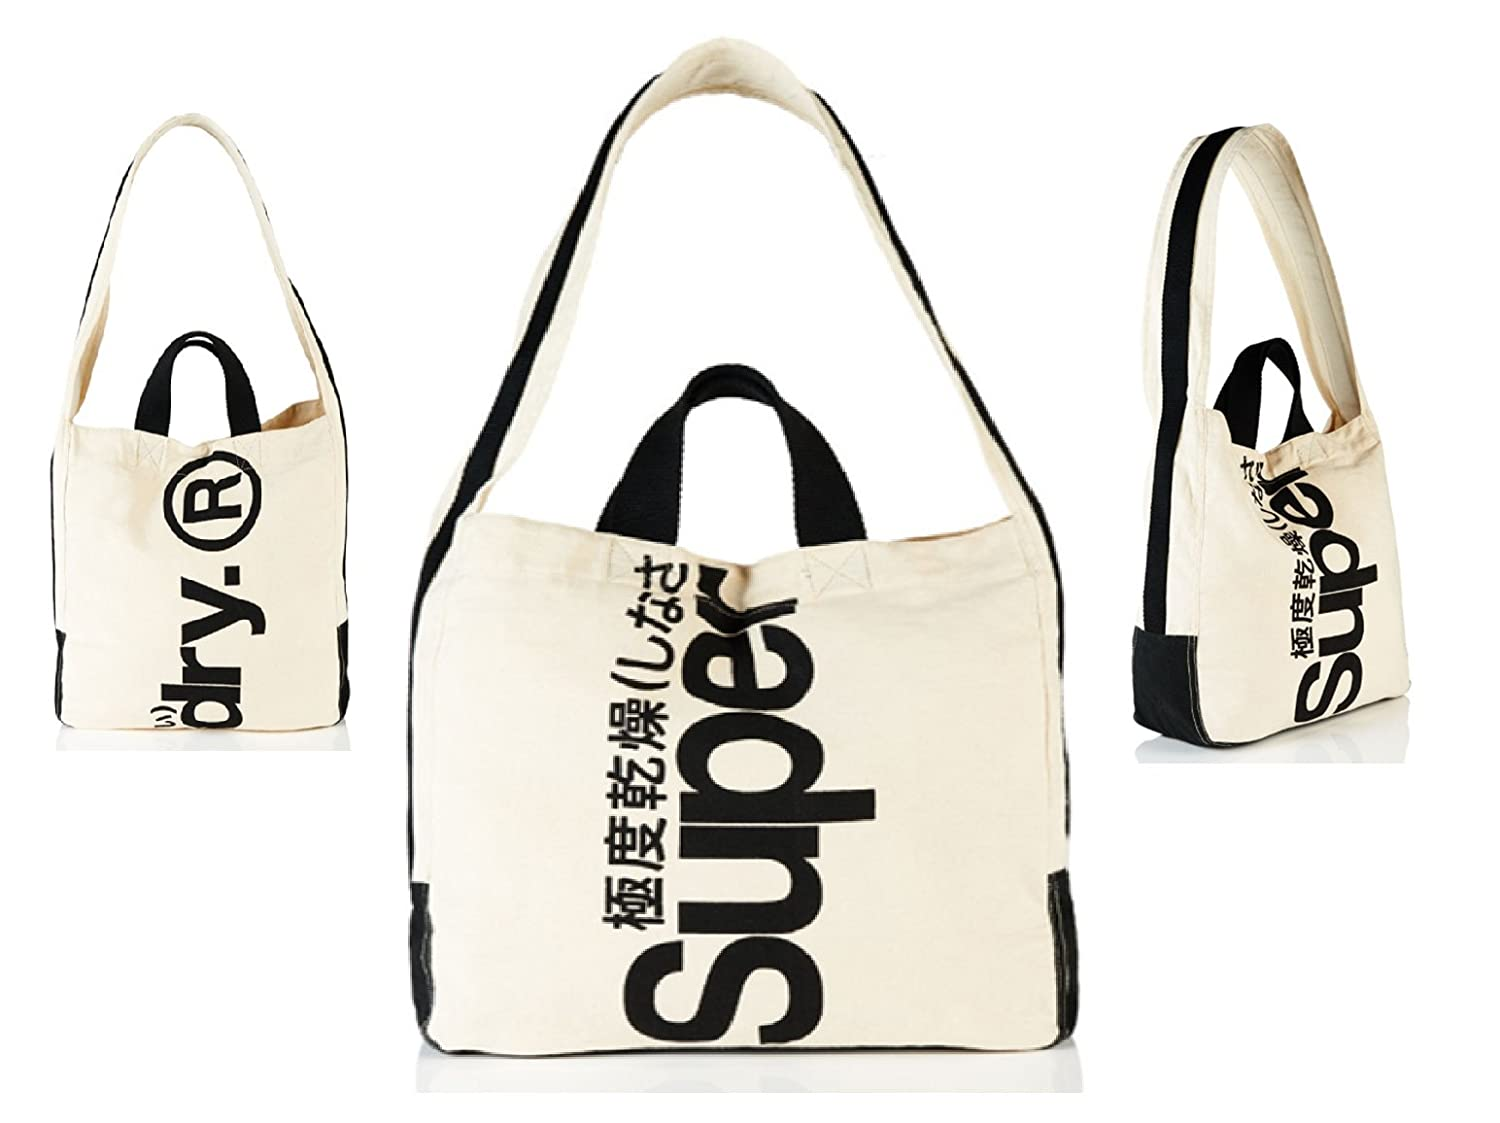 bfaa41ec84c4 Superdry Womens Canvas Tote (Cream Calico)  Amazon.co.uk  Shoes   Bags